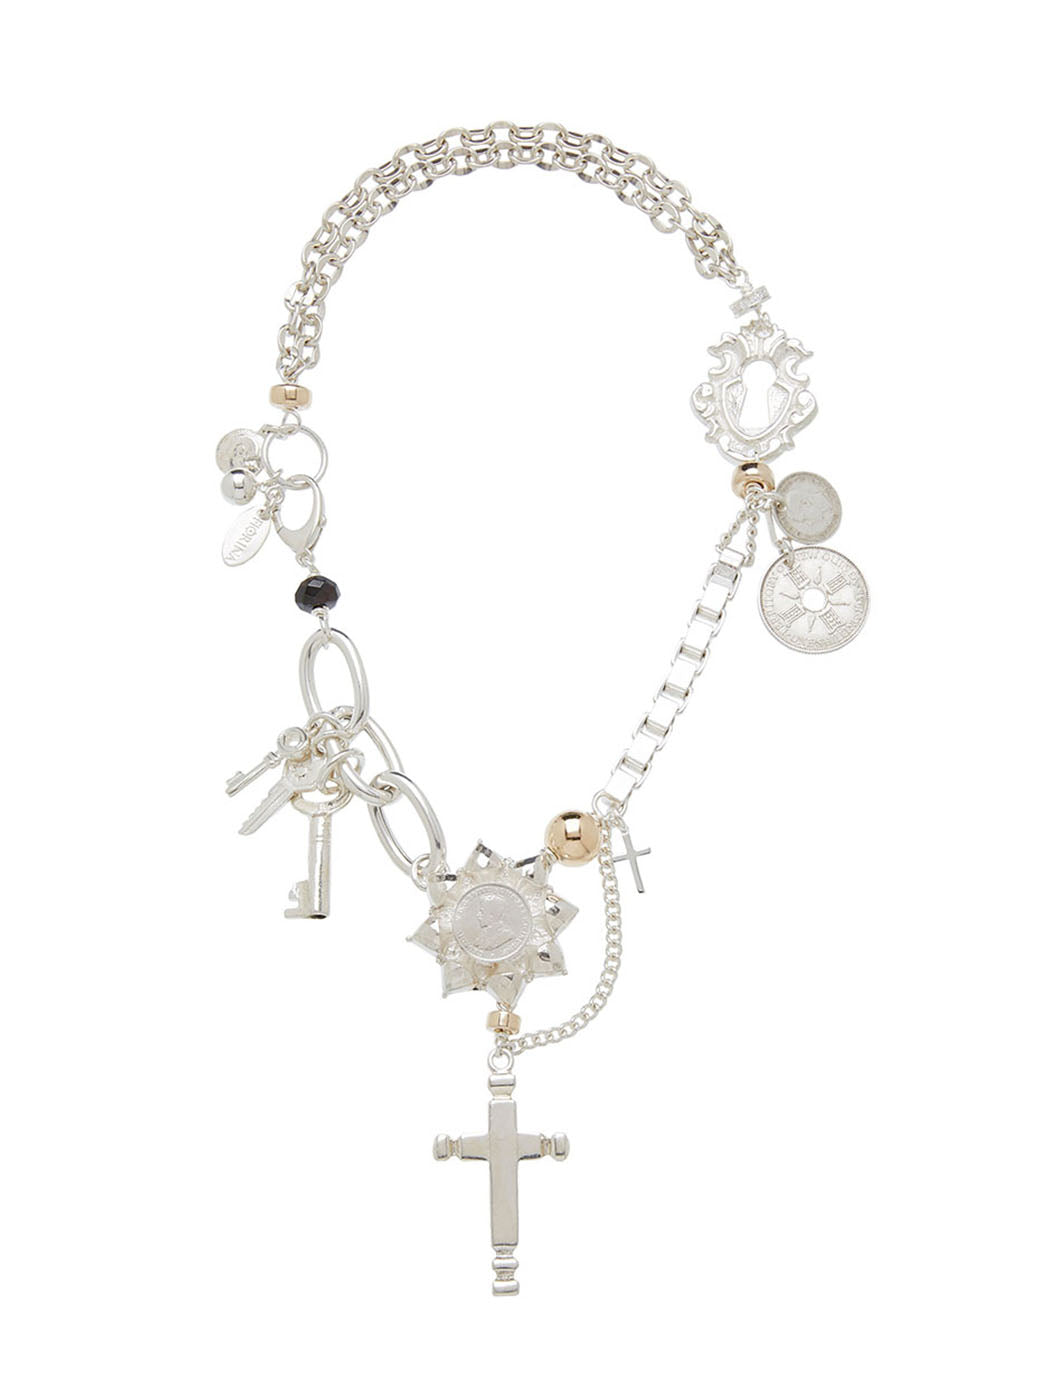 Fiorina Jewellery The Short Don Necklace Starburst